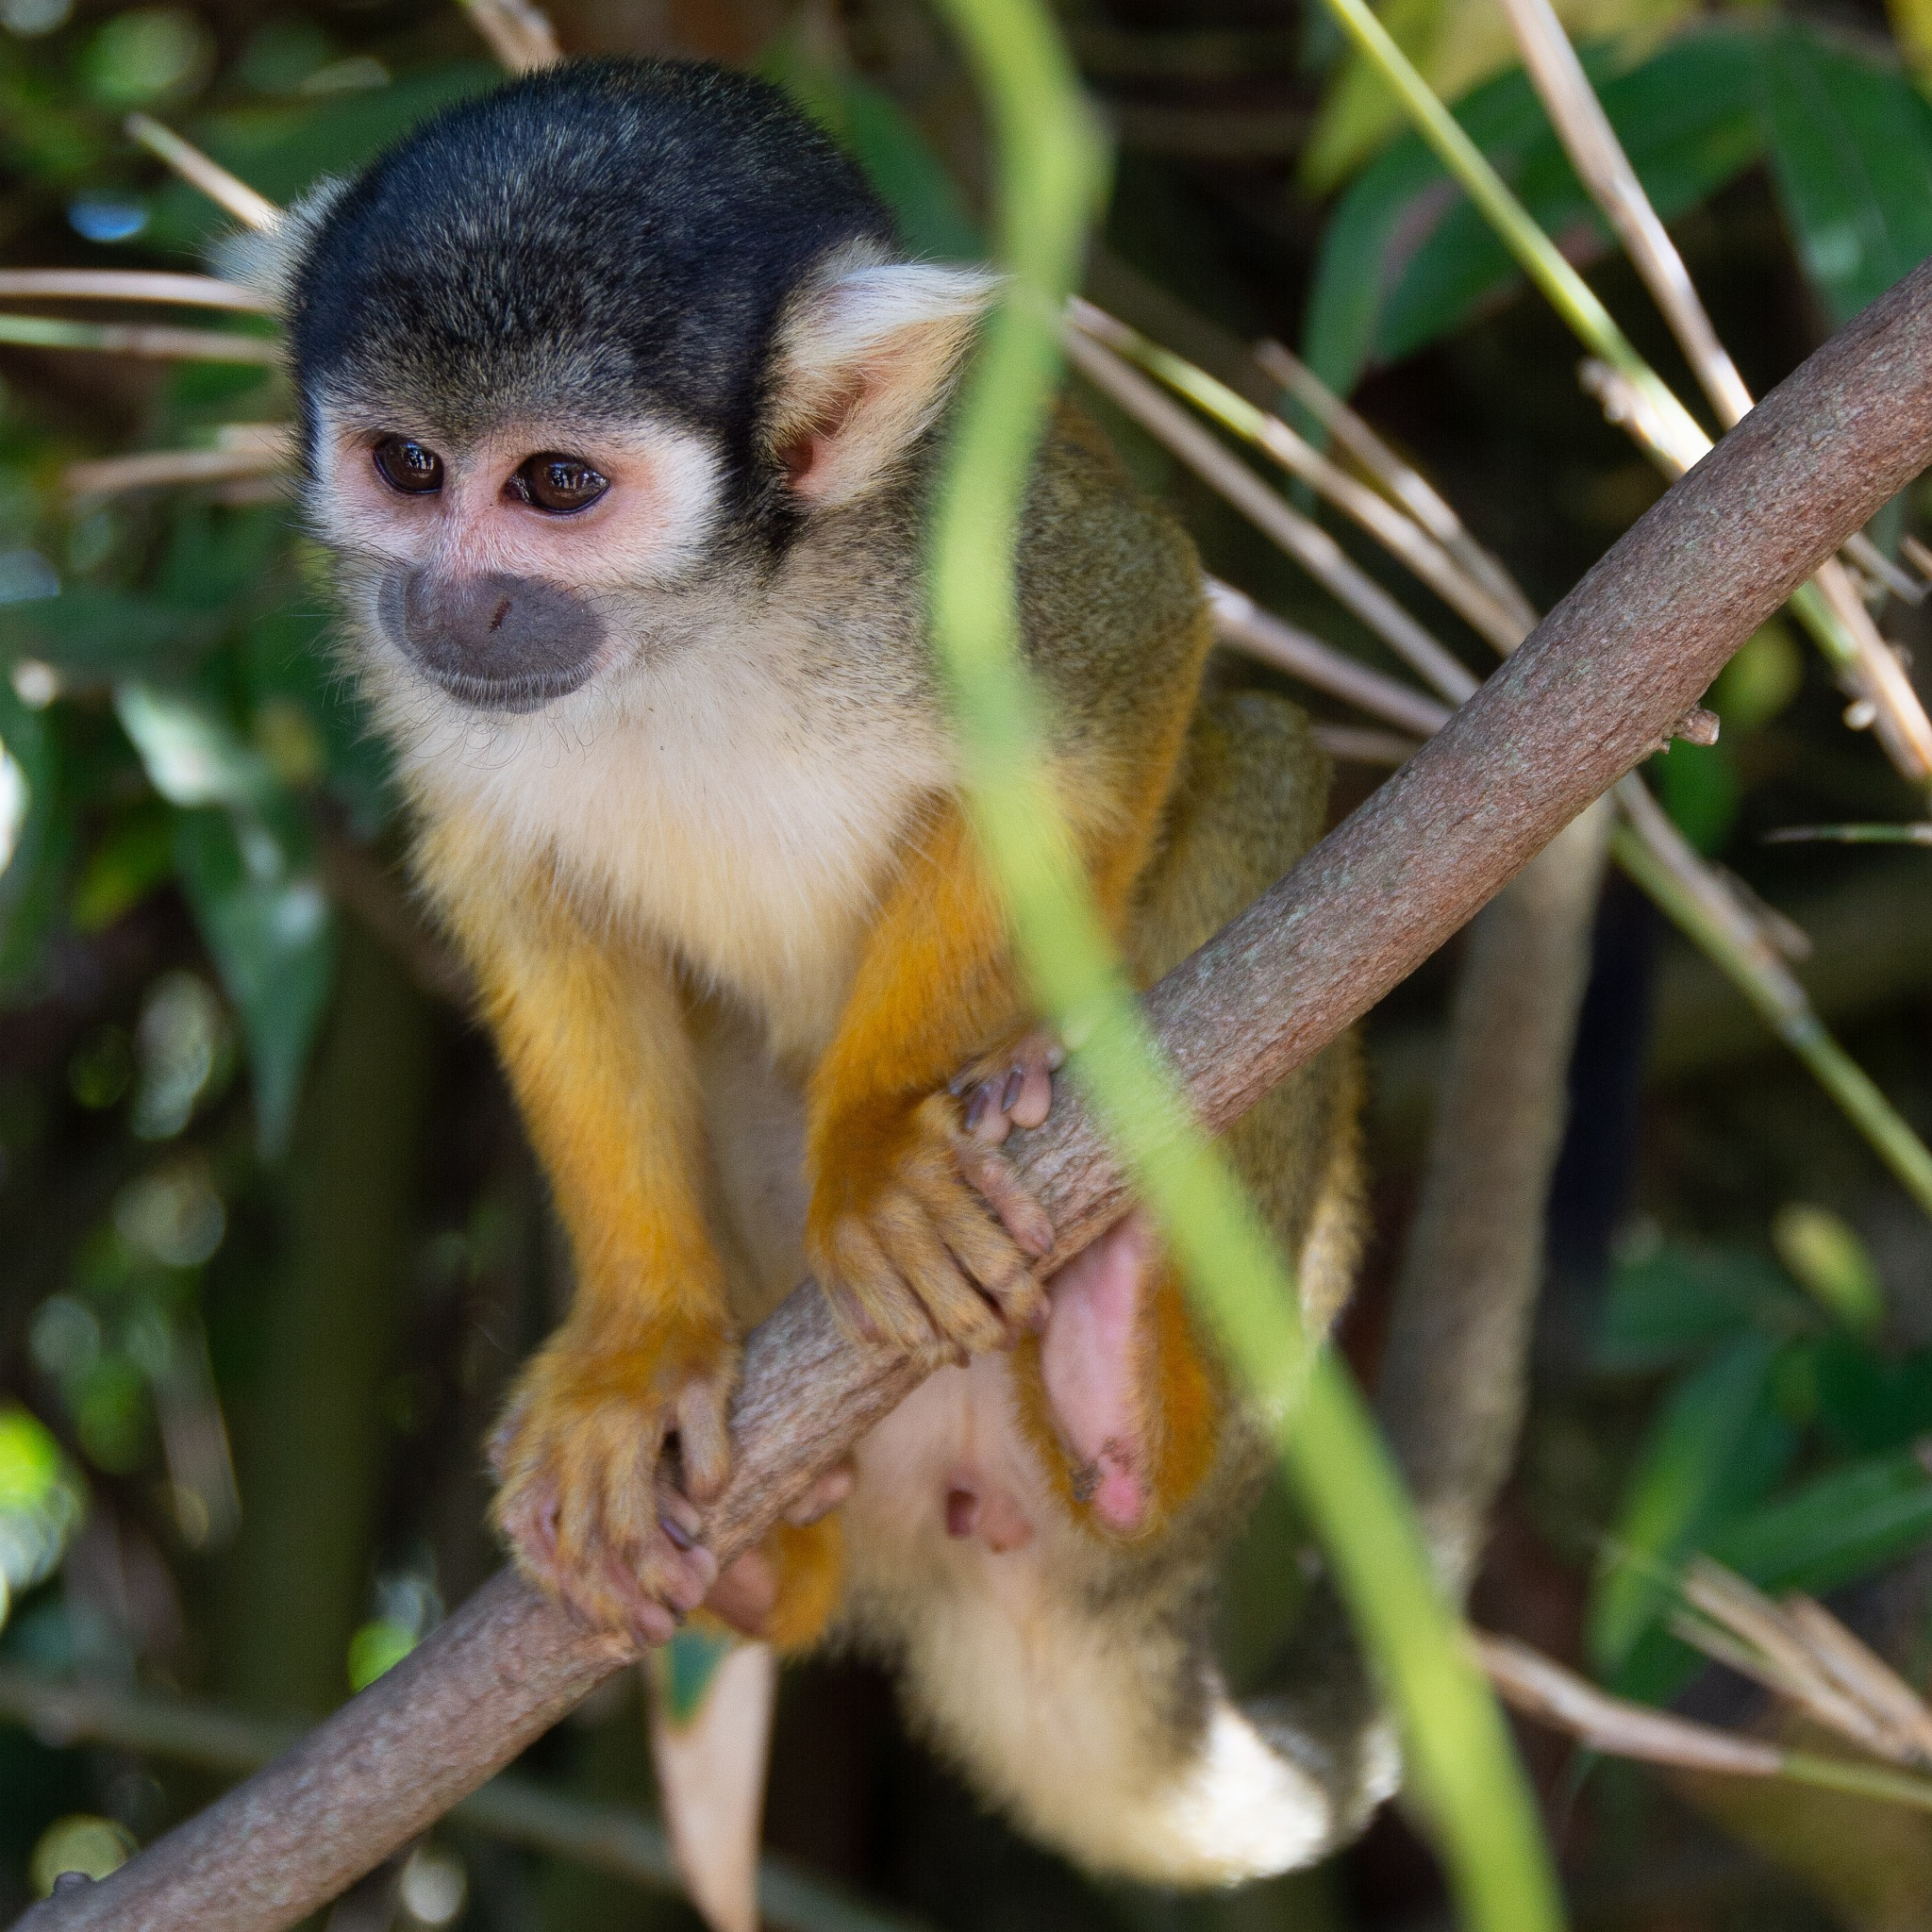 Monkey business by vancoilliefilip